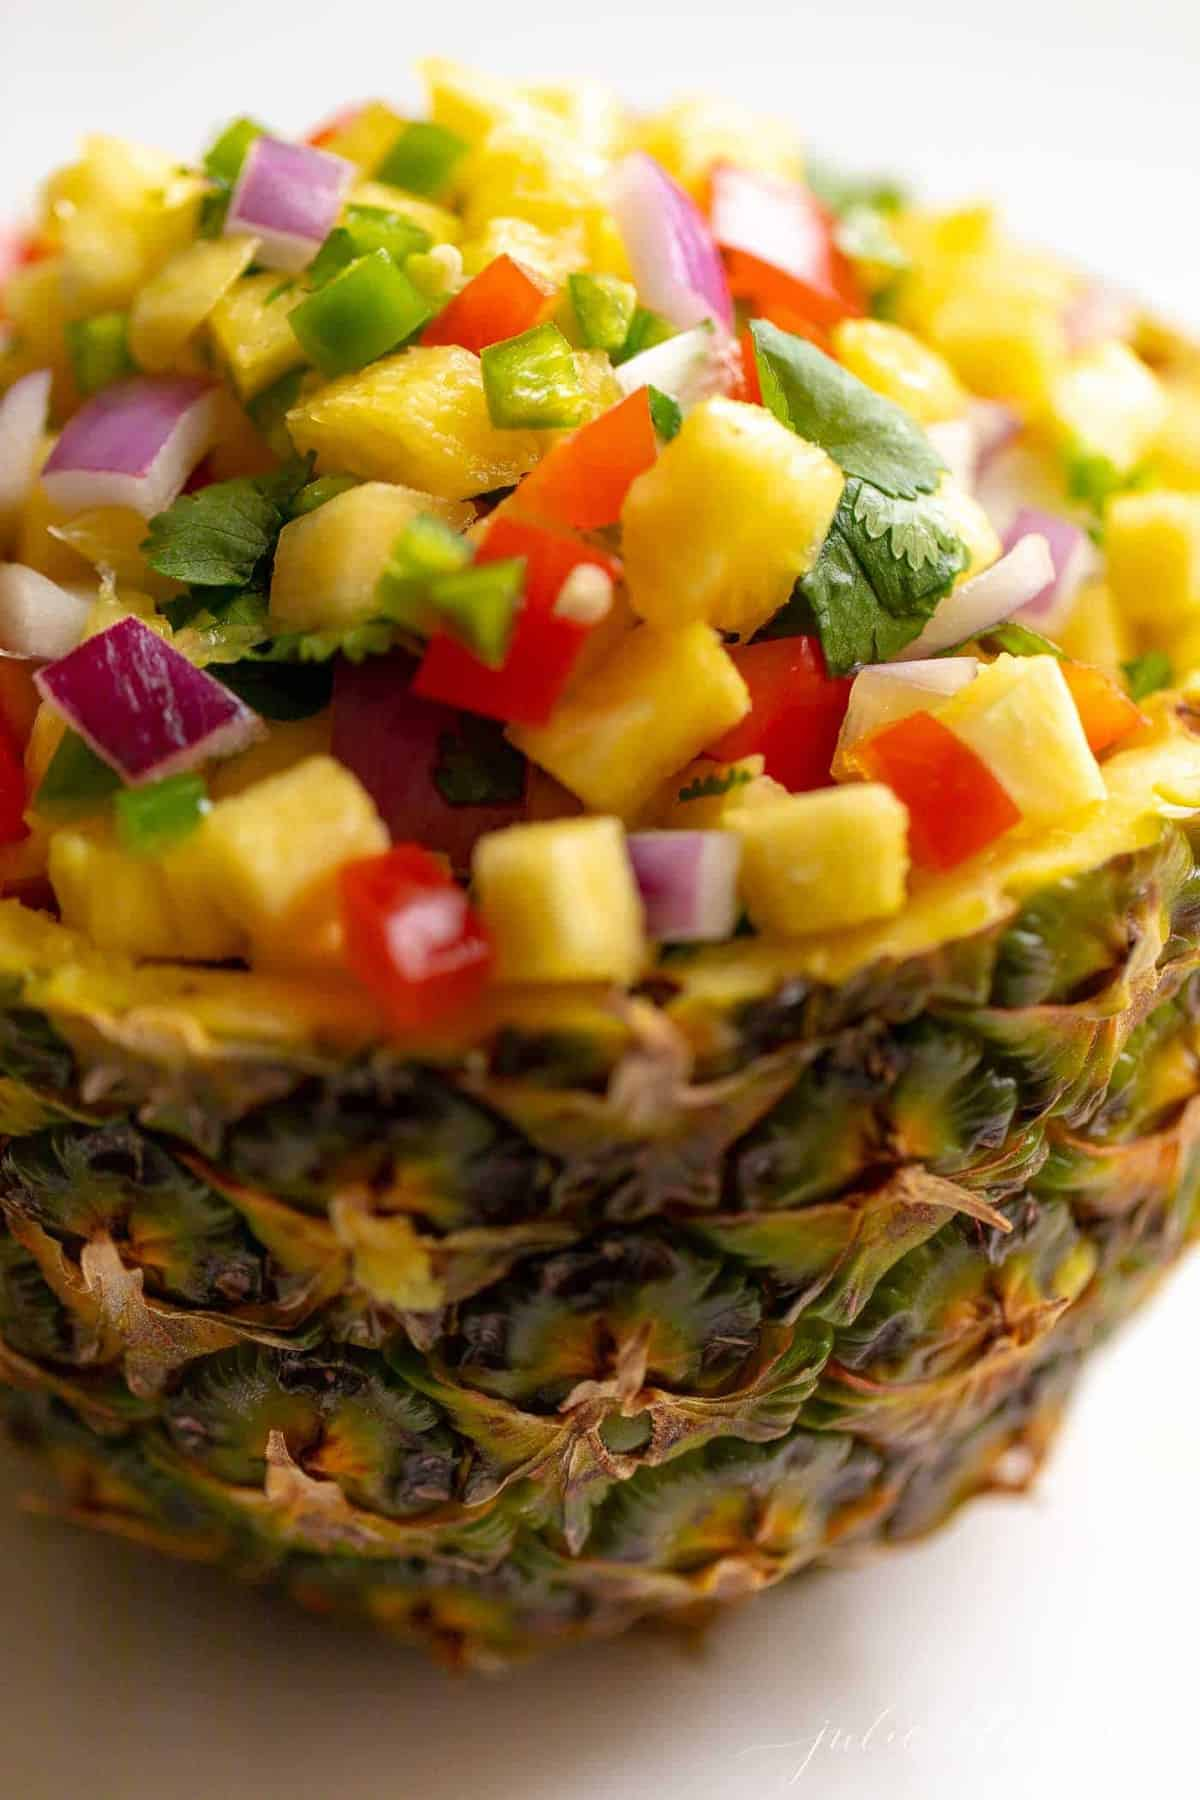 A fresh bowl made from a cut pineapple, filled with pineapple salsa.